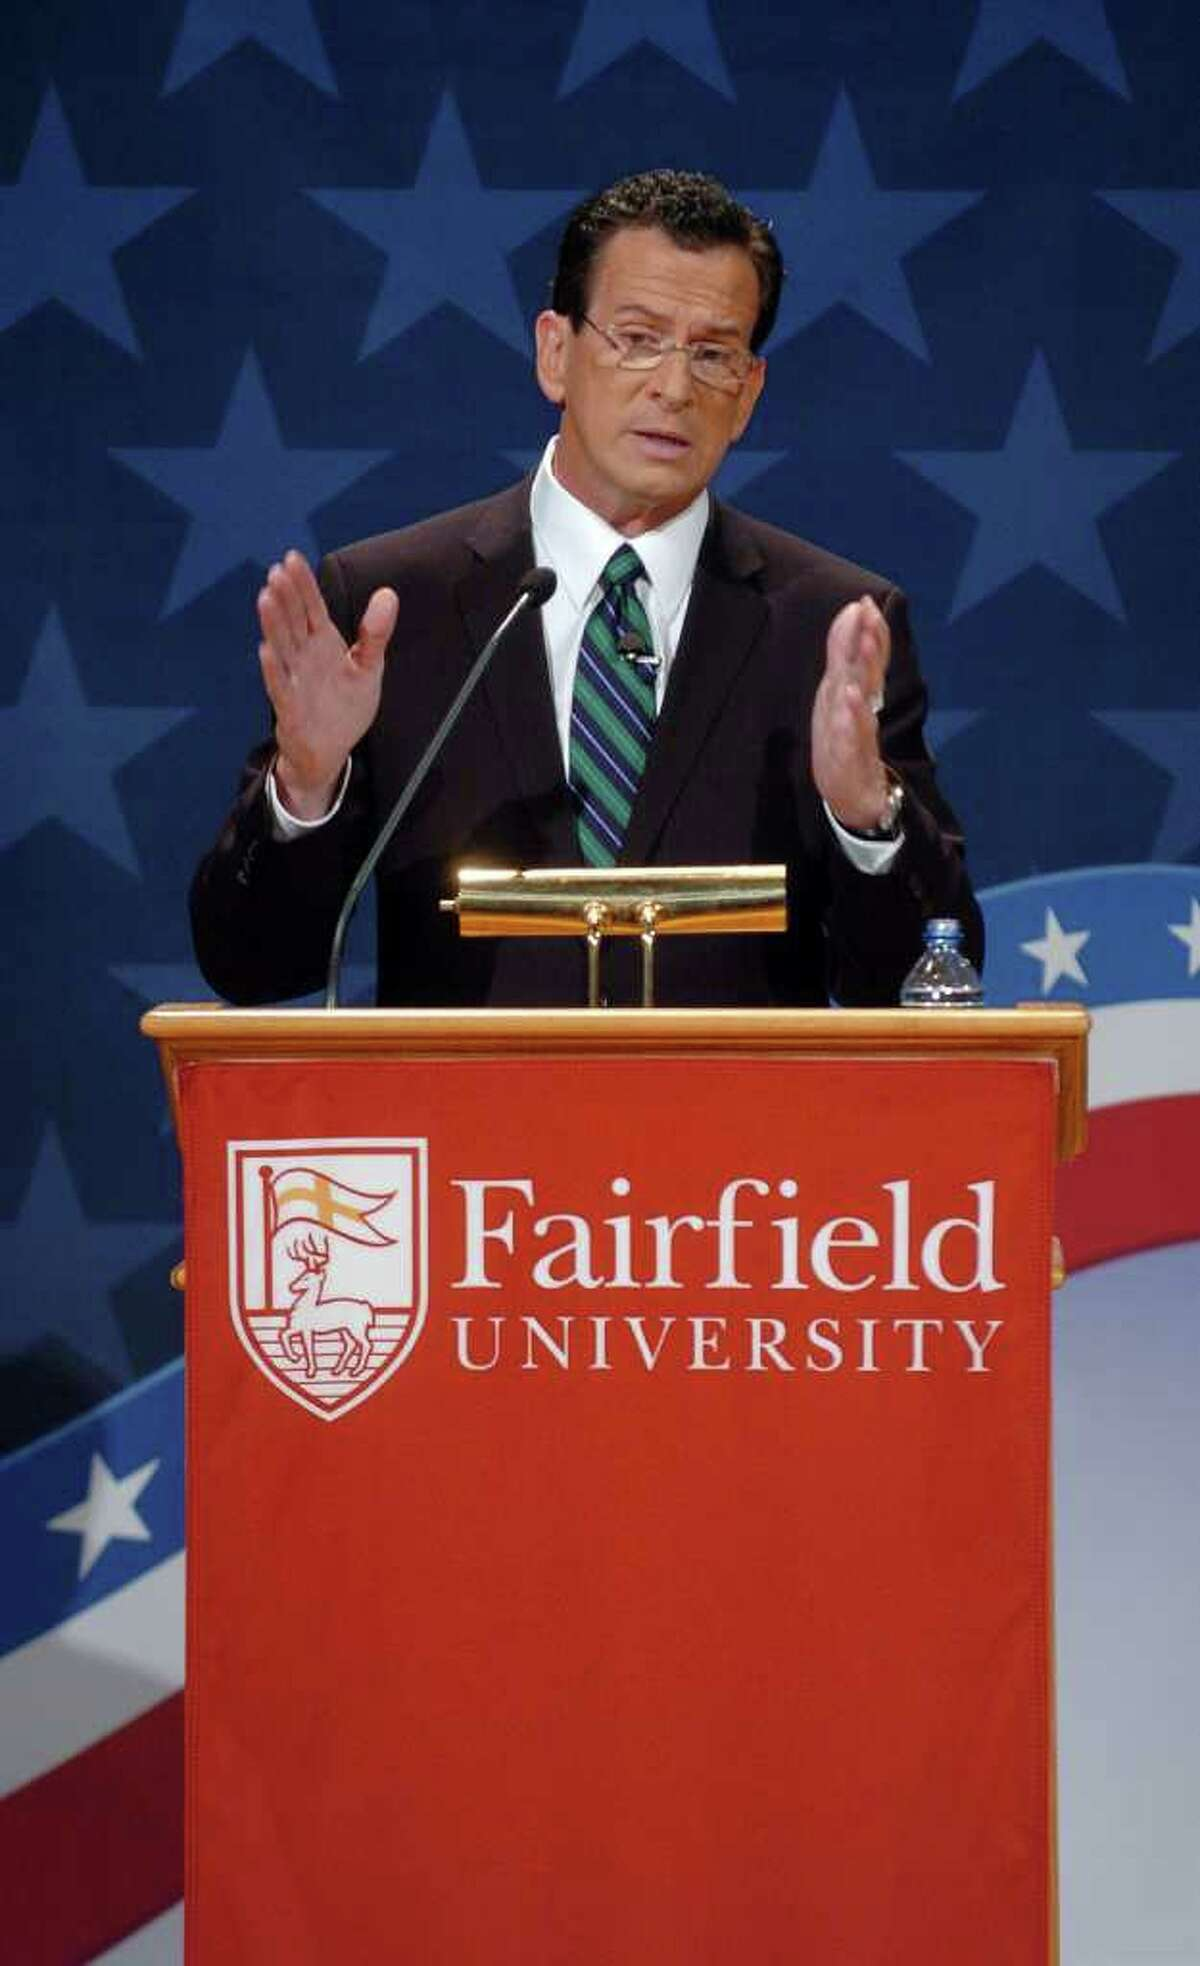 Democratic candidate Dan Malloy answers a question, during the gubernatorial debate at the Regina Quick Center for the Arts at Fairfield University in Fairfield, Conn. on Tuesday October 19, 2010.